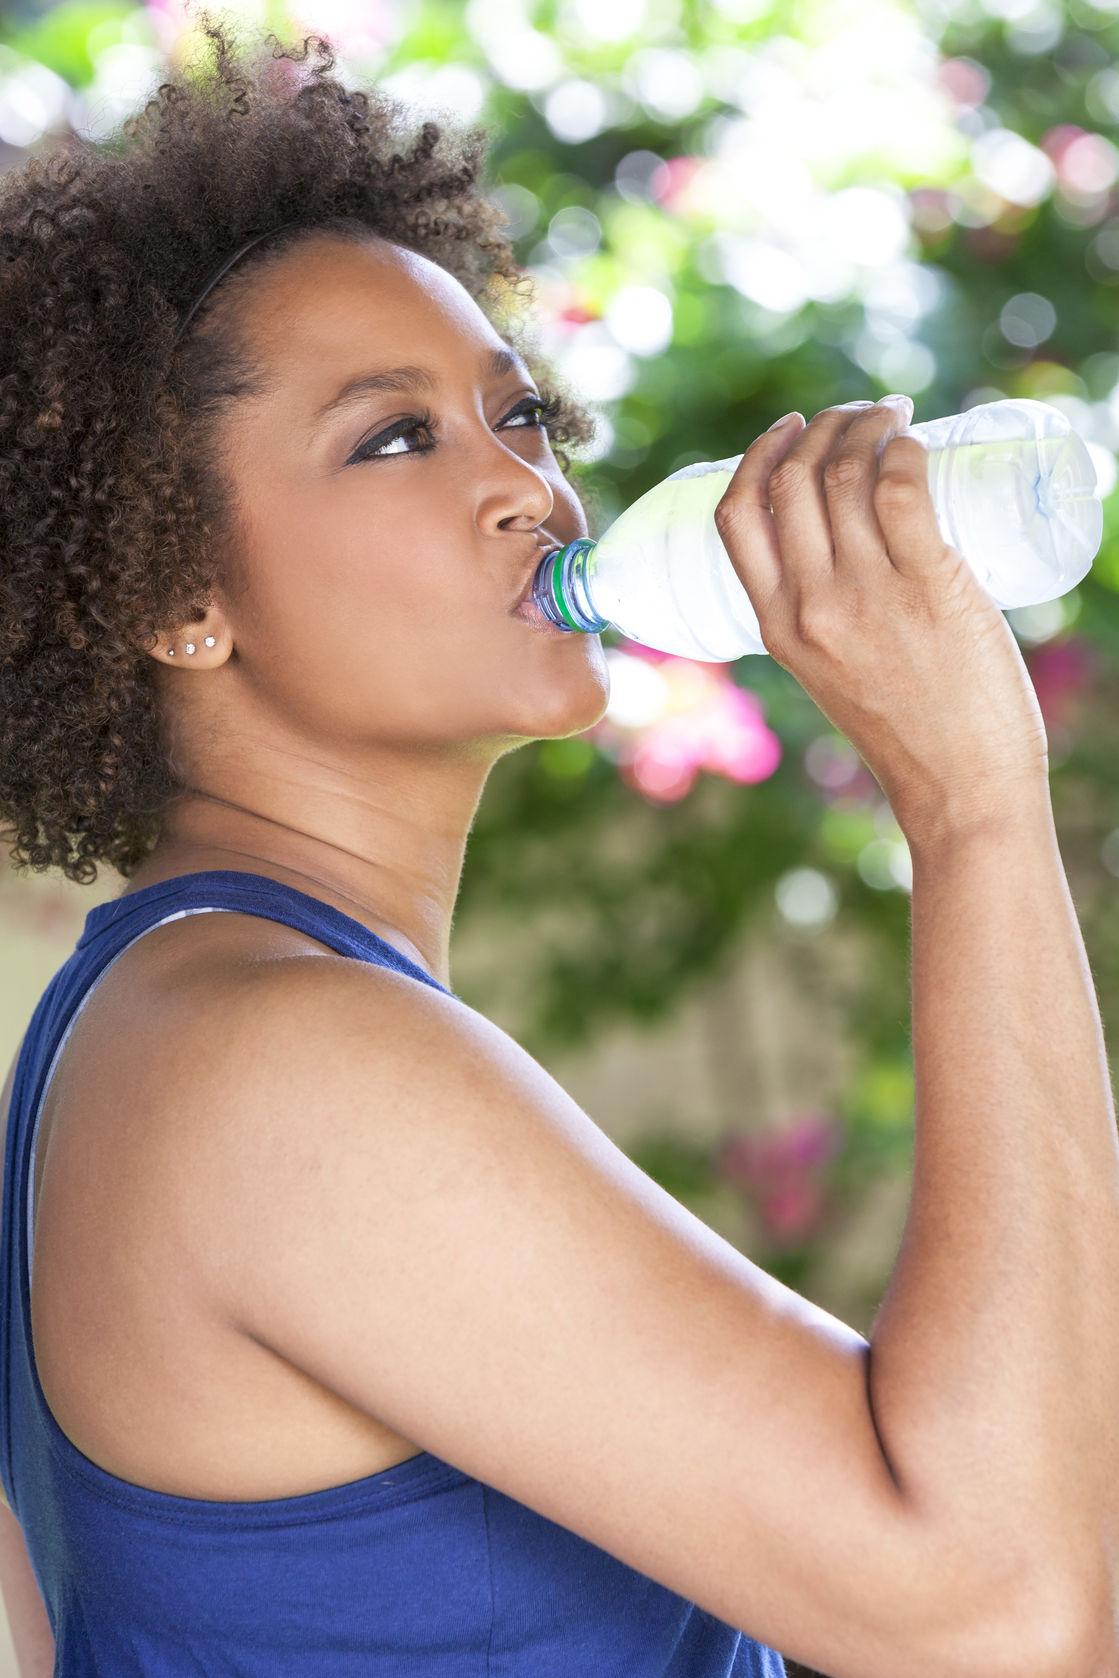 Drink water to hydrate effectively  https://www.info-on-high-blood-pressure.com/How-To-Hydrate.html